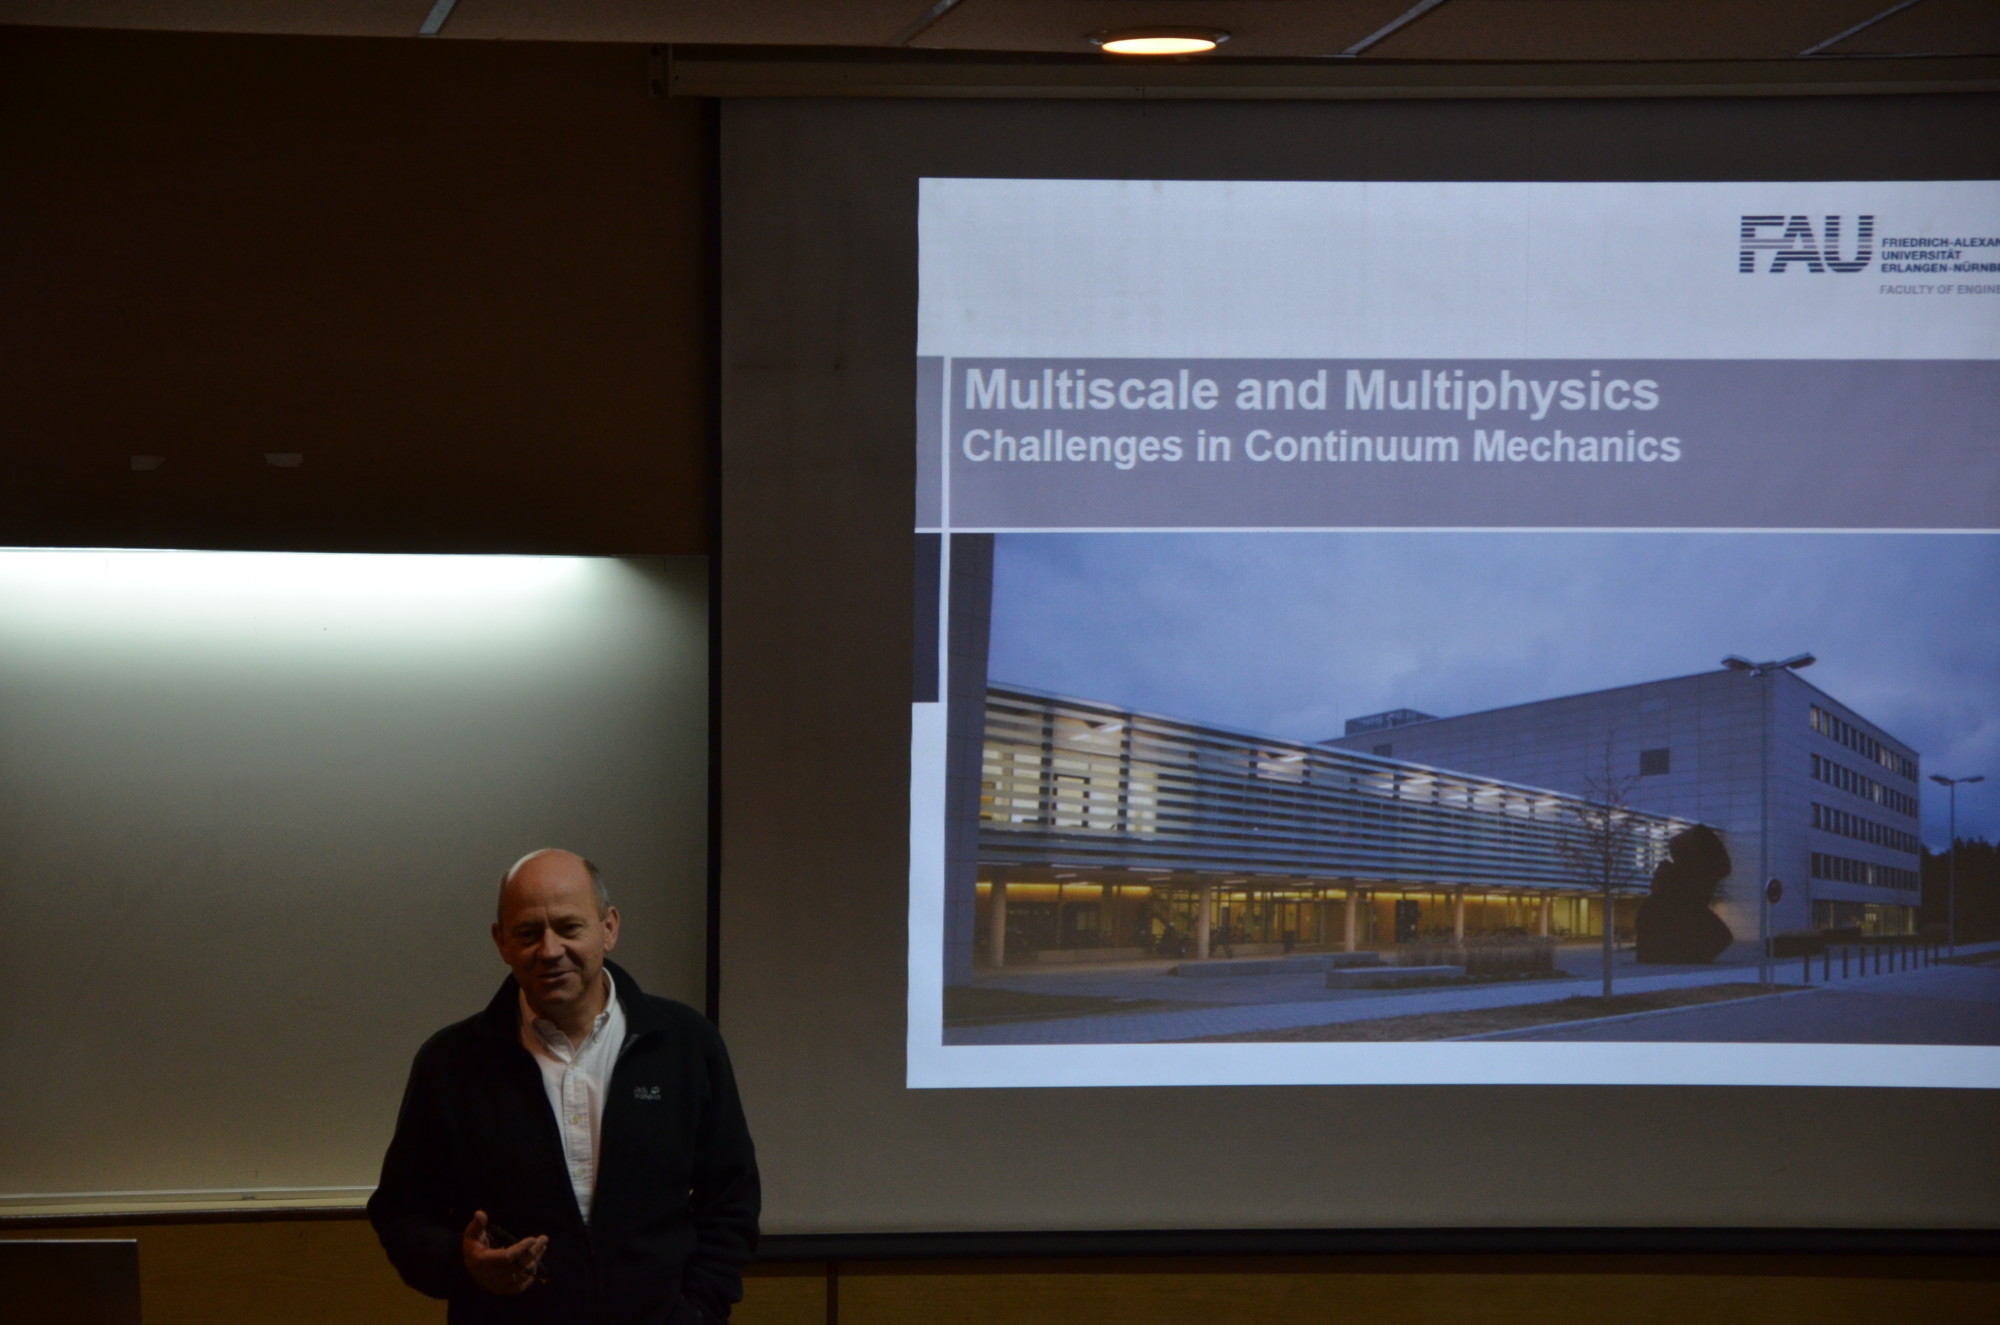 """Prof. Dr. Paul Steinmann giving a lecture on """"Multiscale and Multiphysics Challenges in Continuum Mechanics"""" at the Indian Institute of Technology Delhi."""